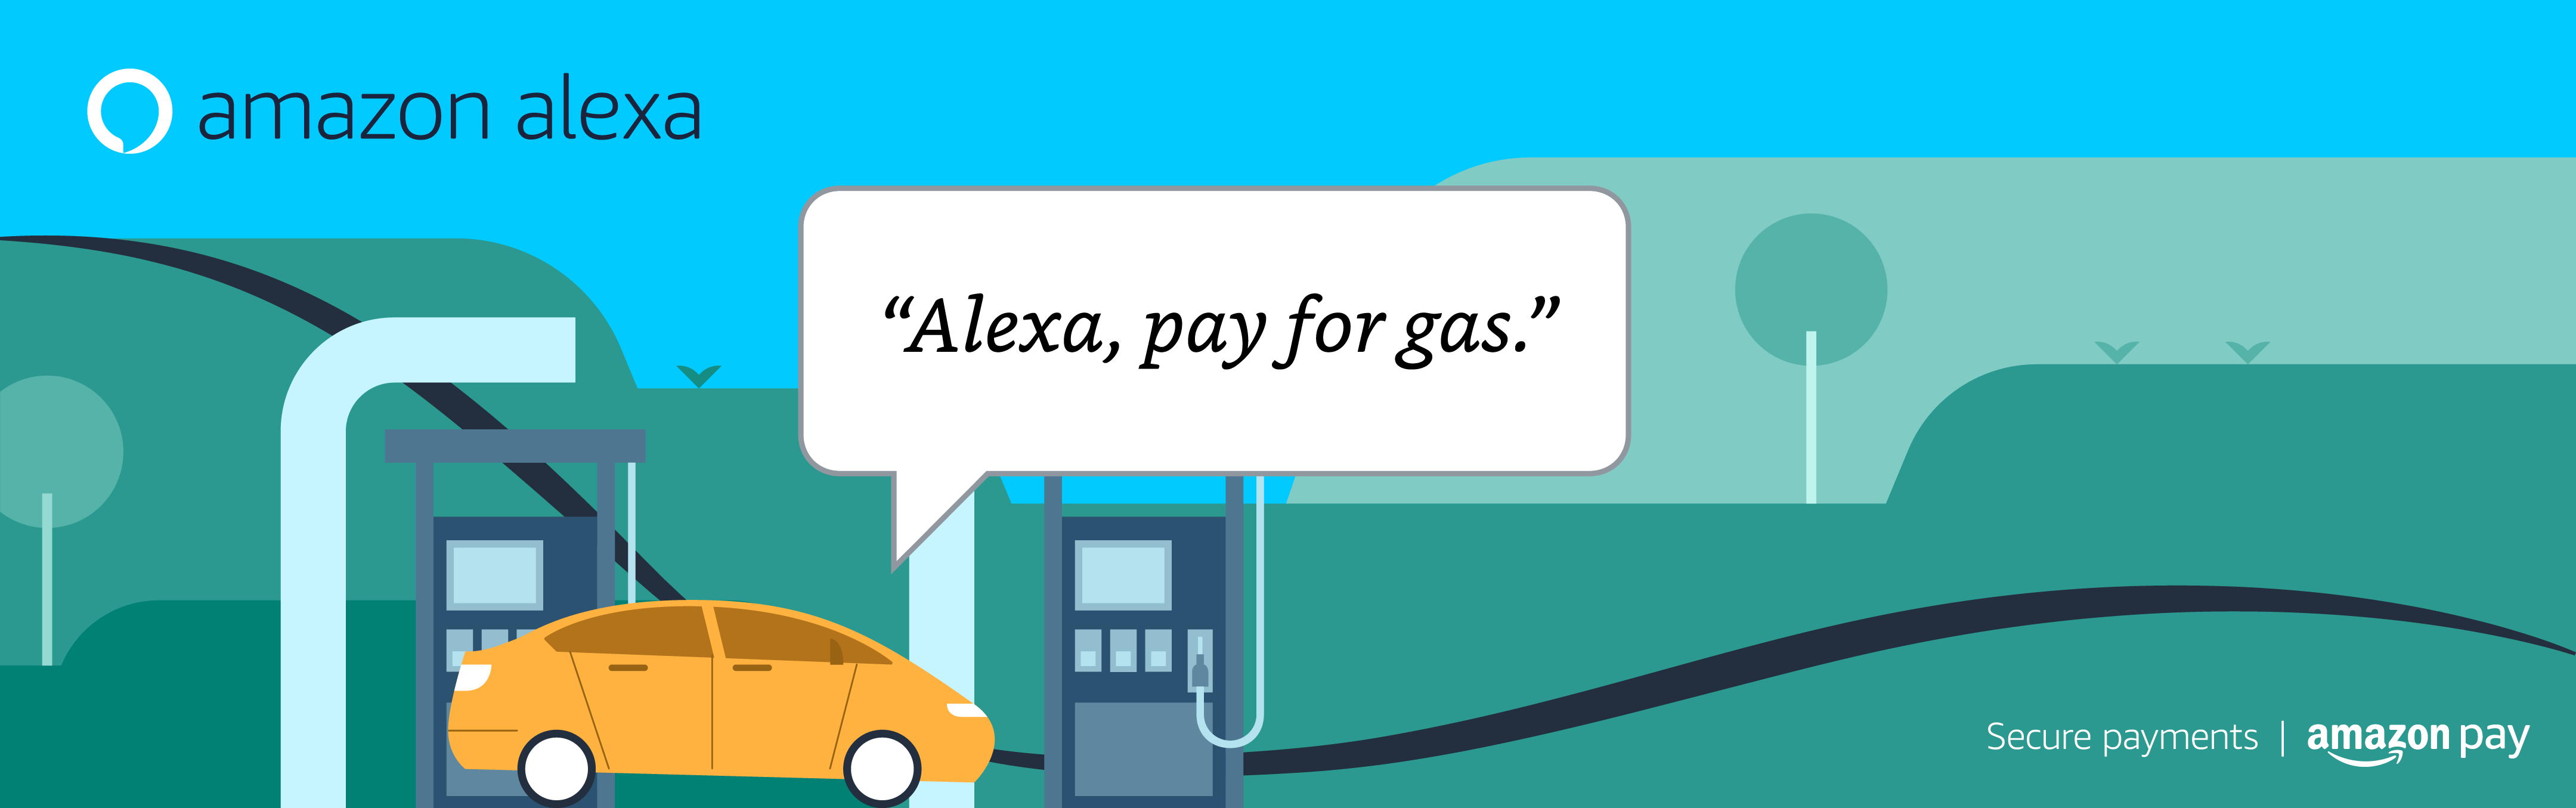 Alexa, pay for gas